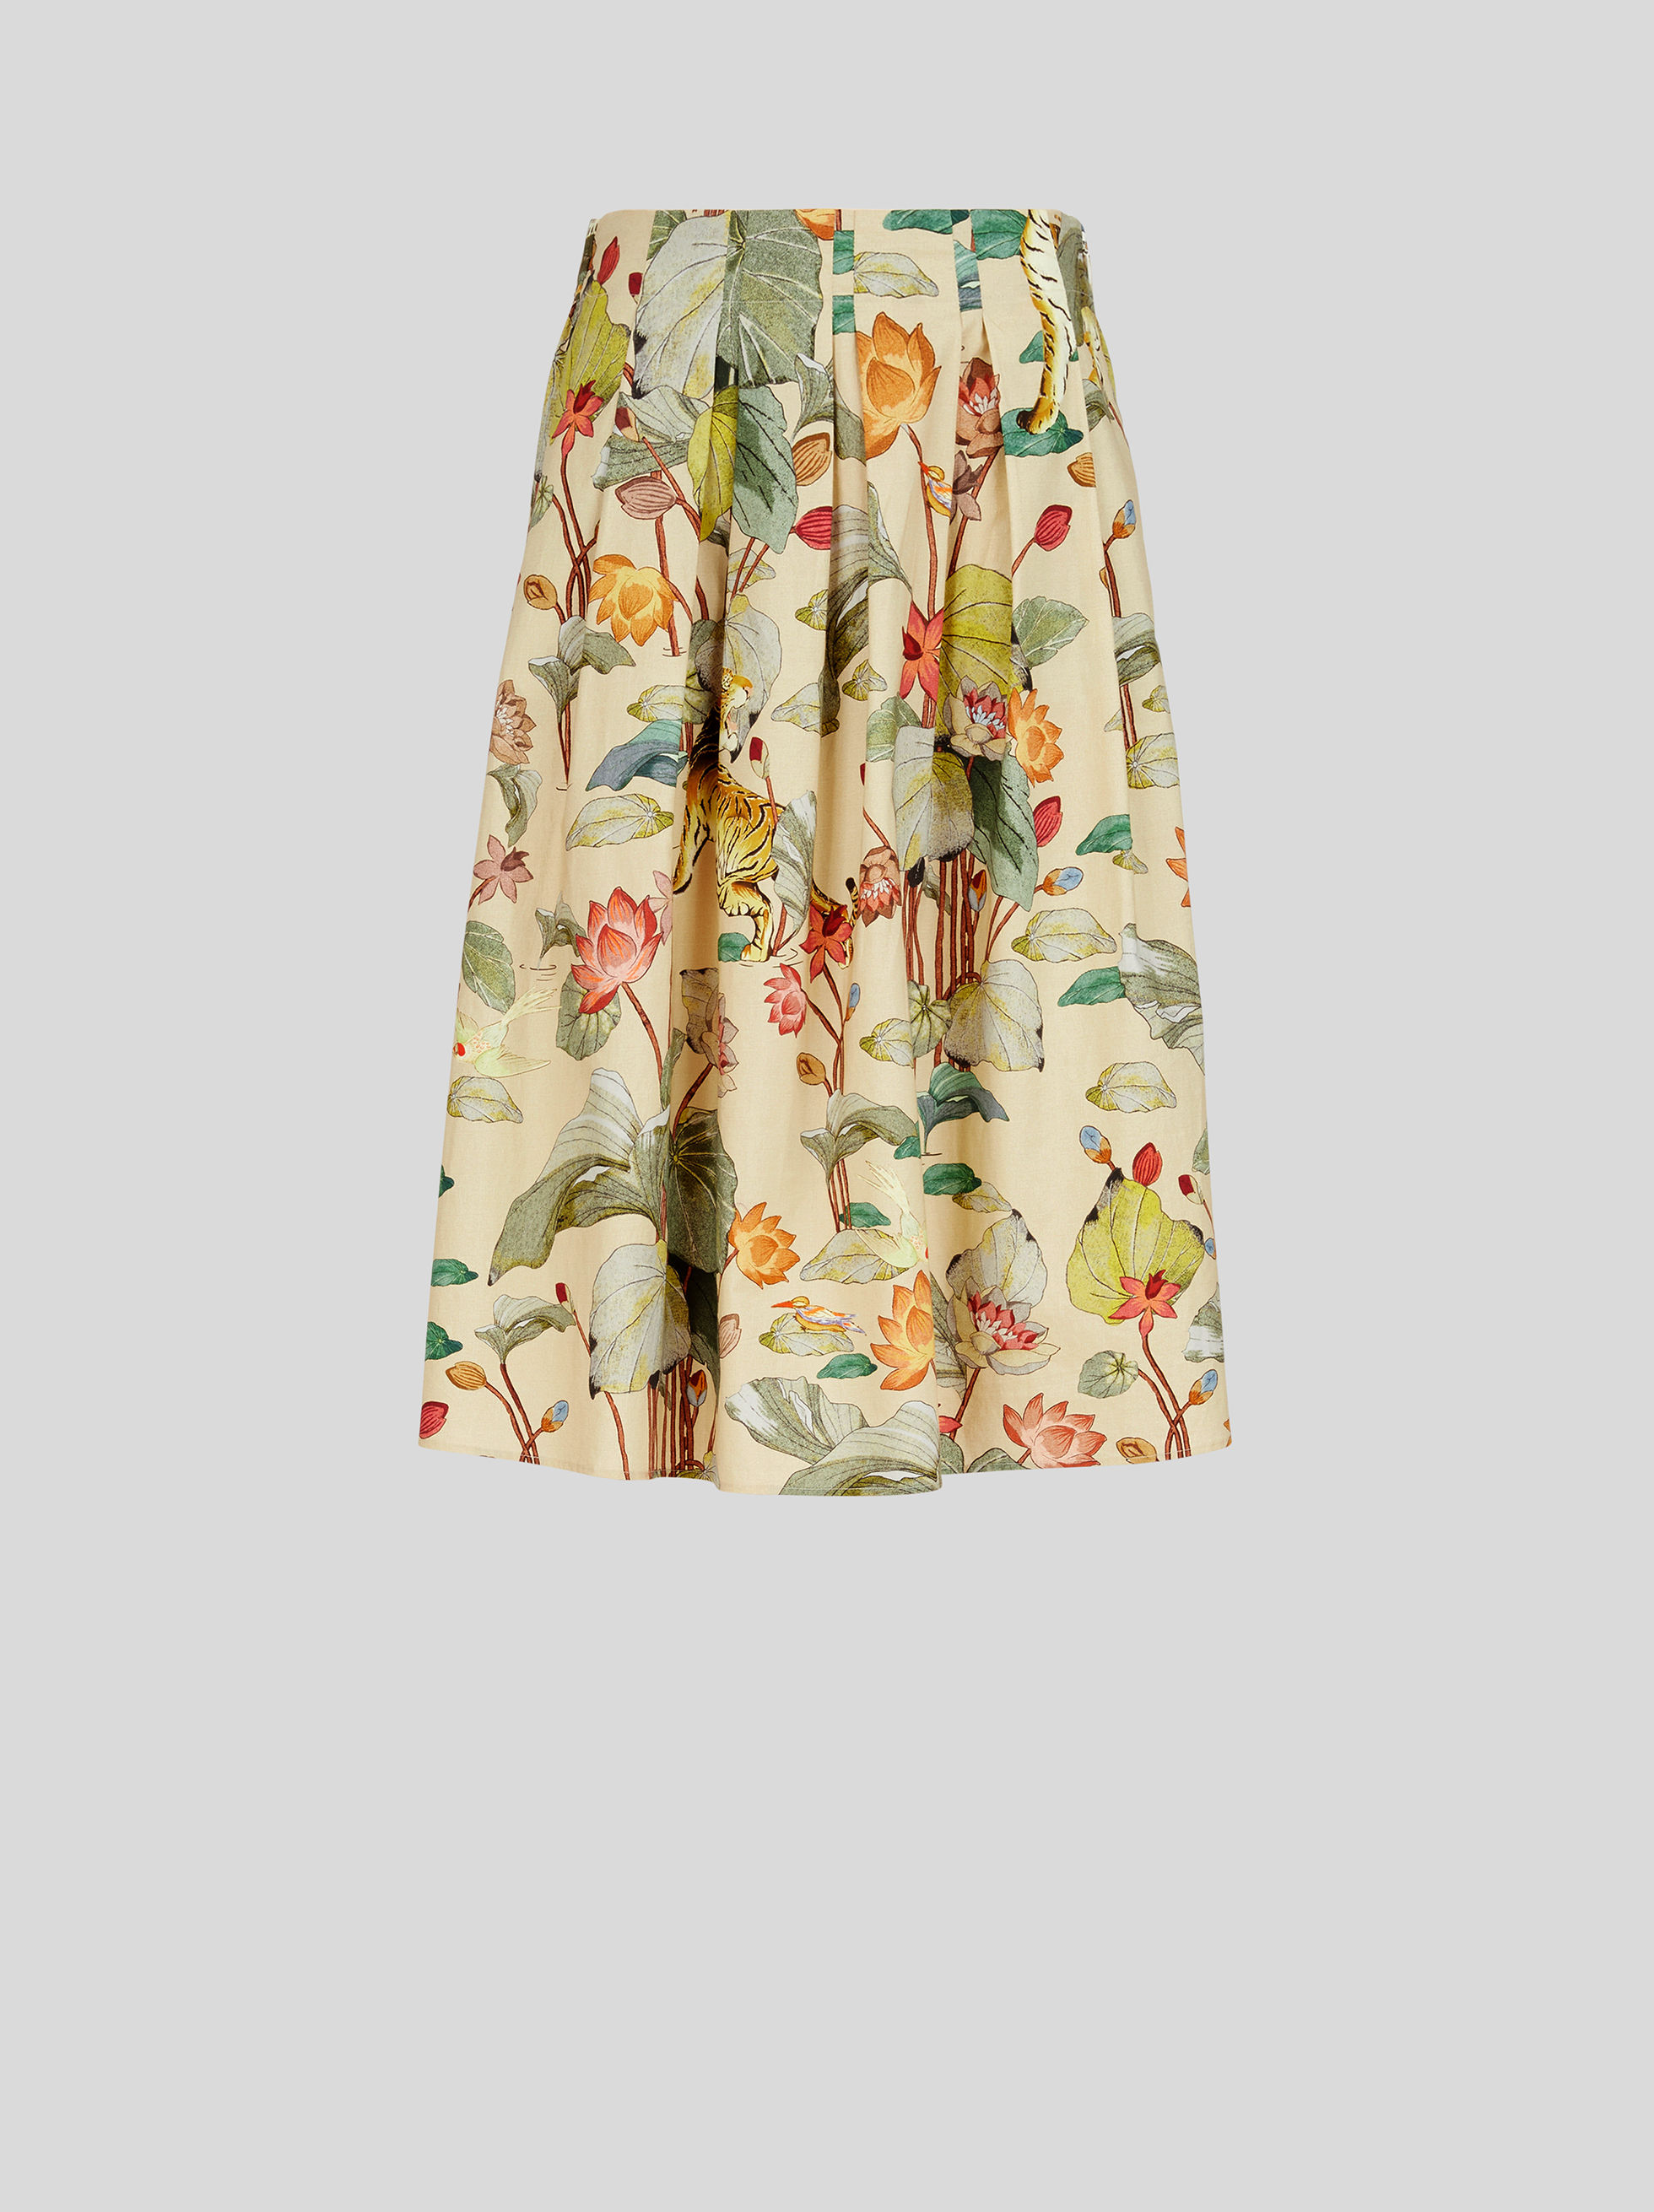 TIGER AND WATER LILY COTTON SKIRT